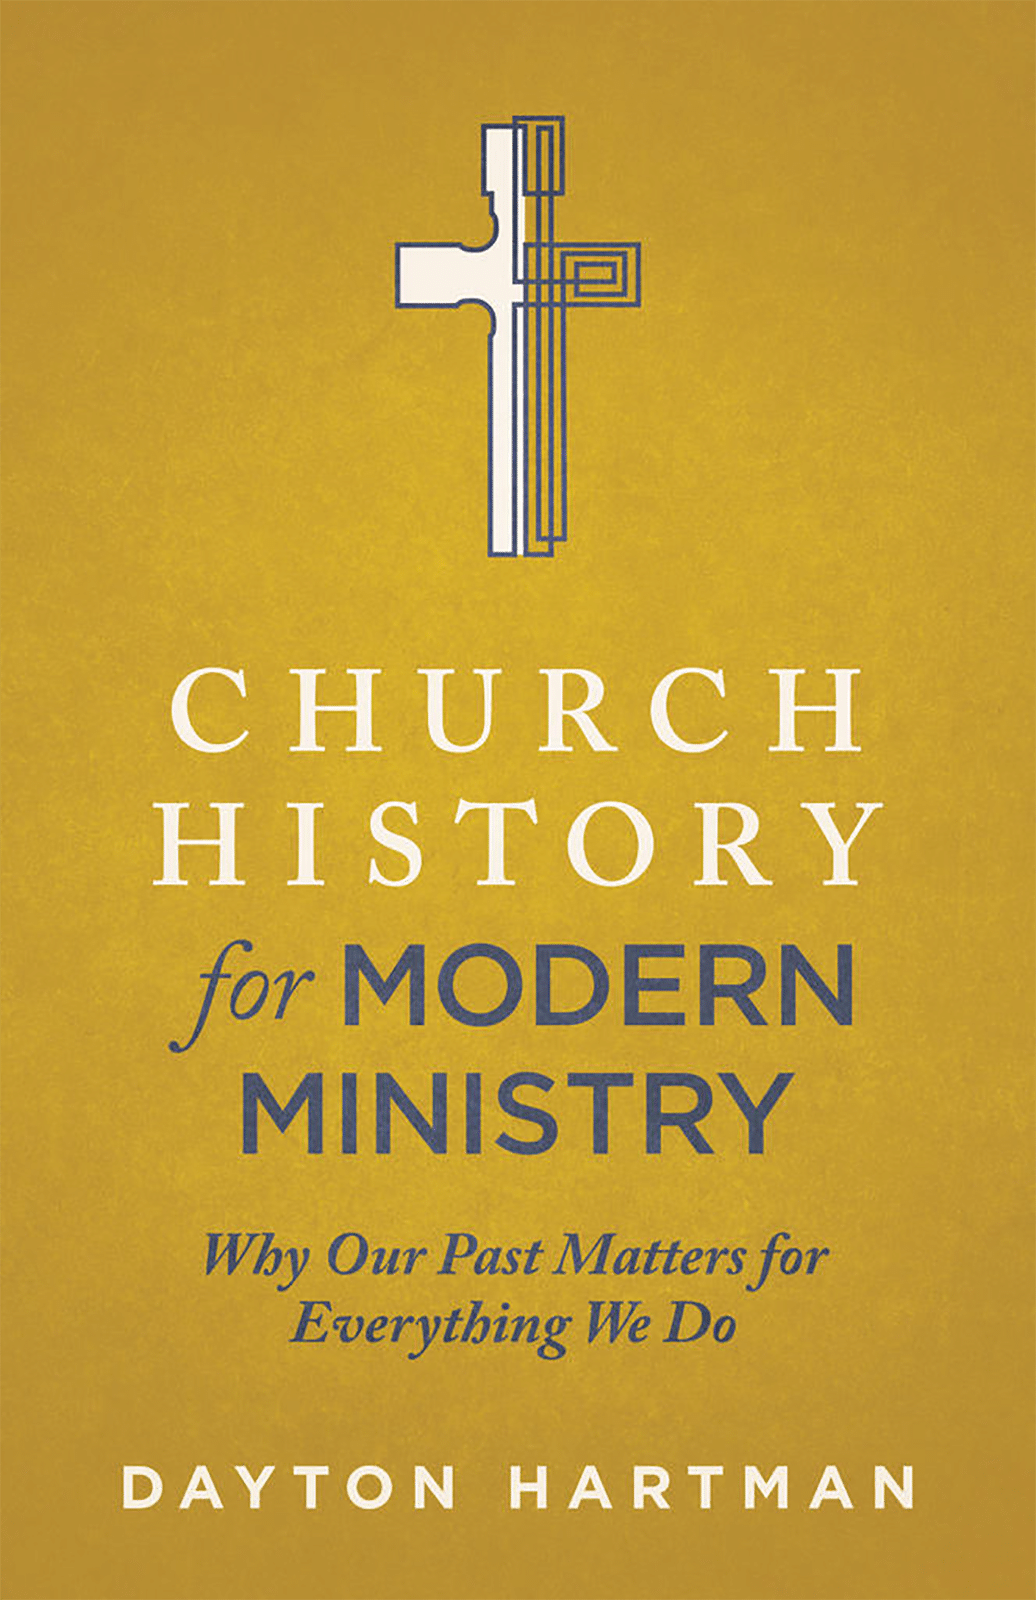 Church History for Modern Ministry